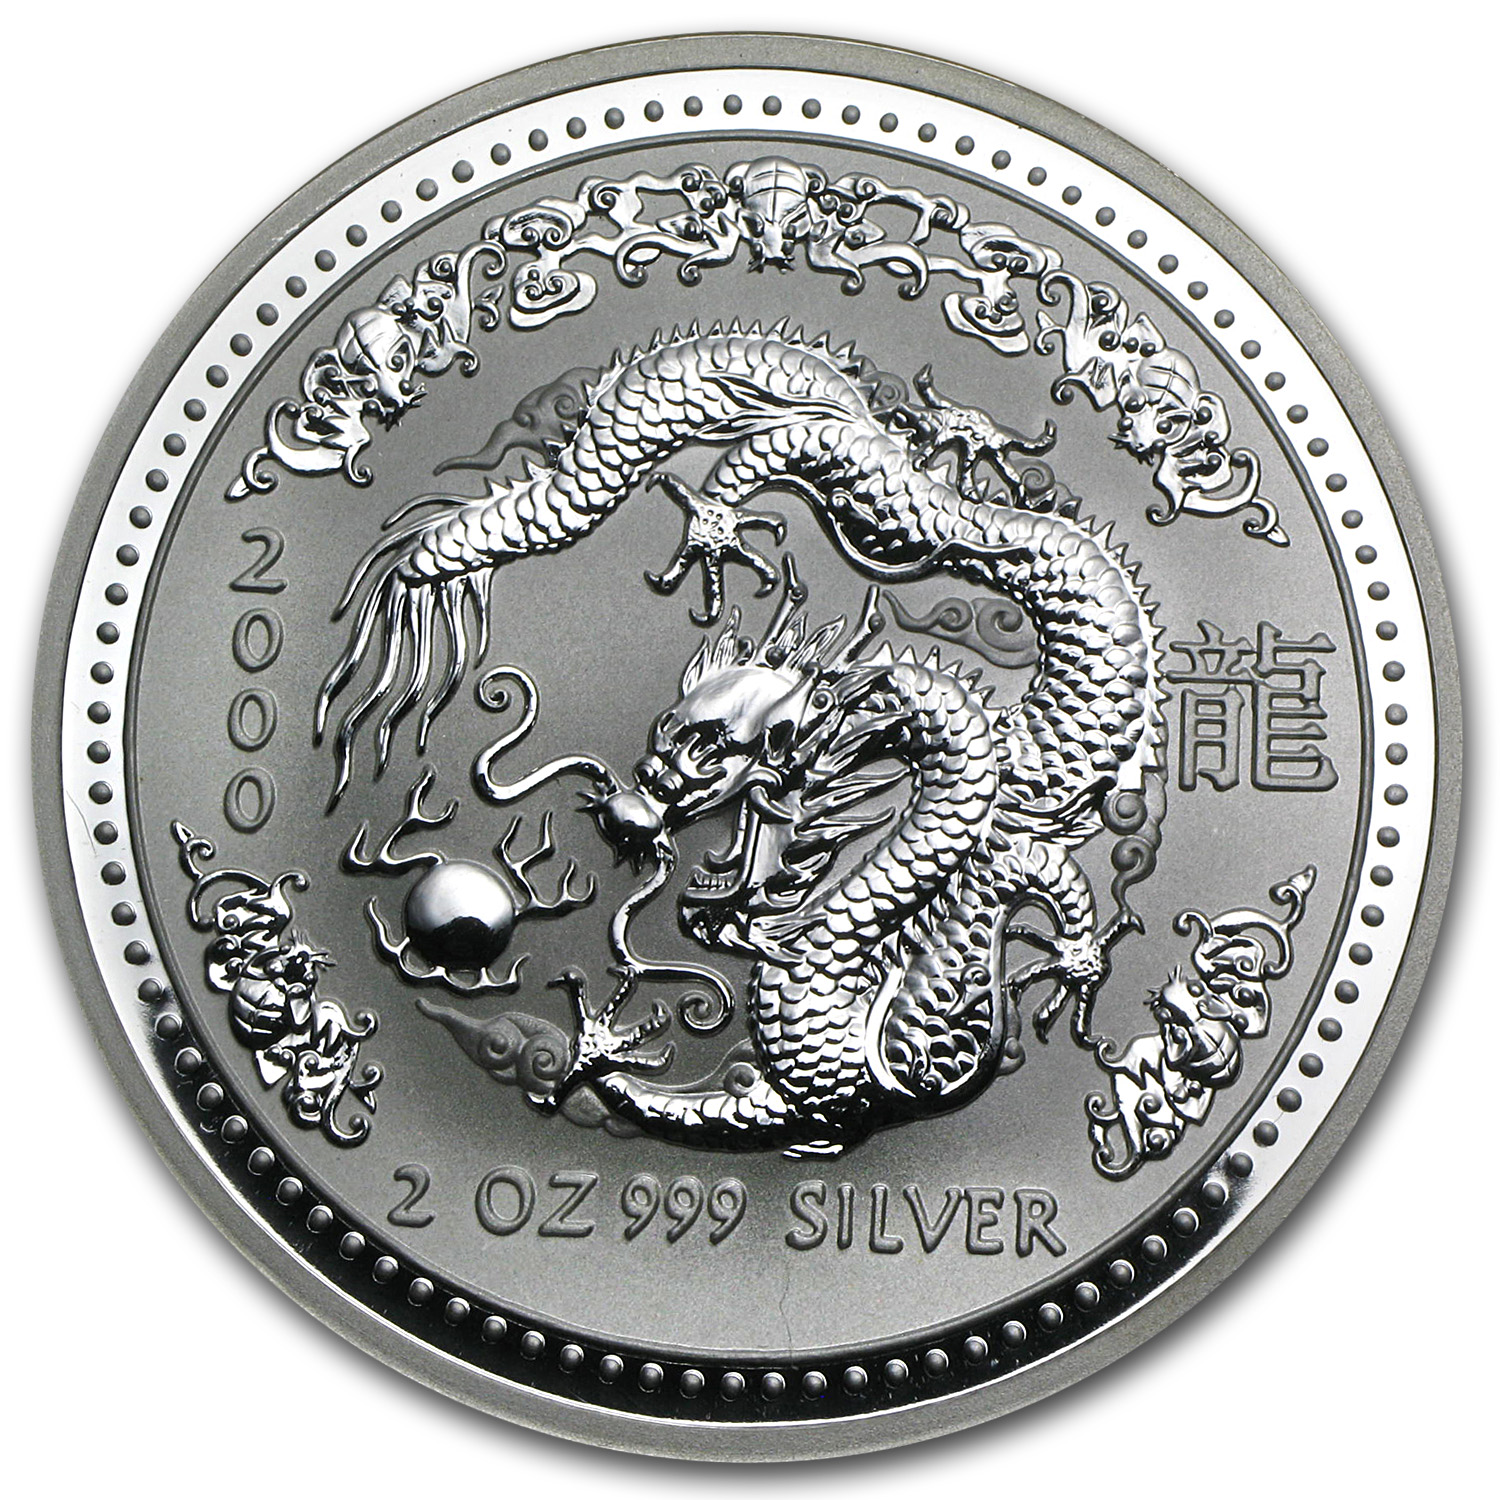 2000 2 oz Silver Australian Year of the Dragon BU